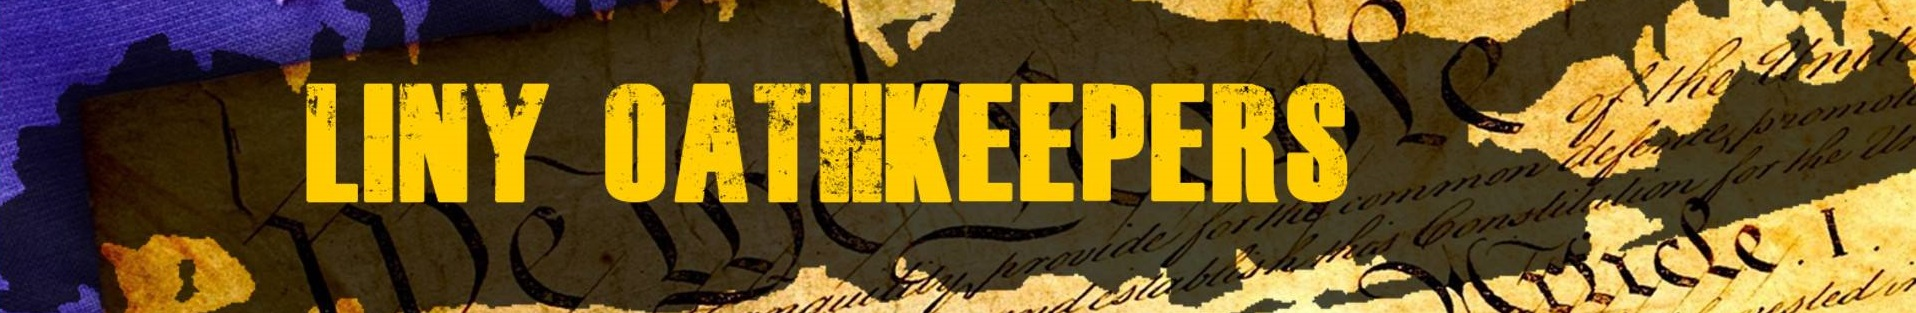 Open letter from the Long Island Oath Keepers on COVID 19